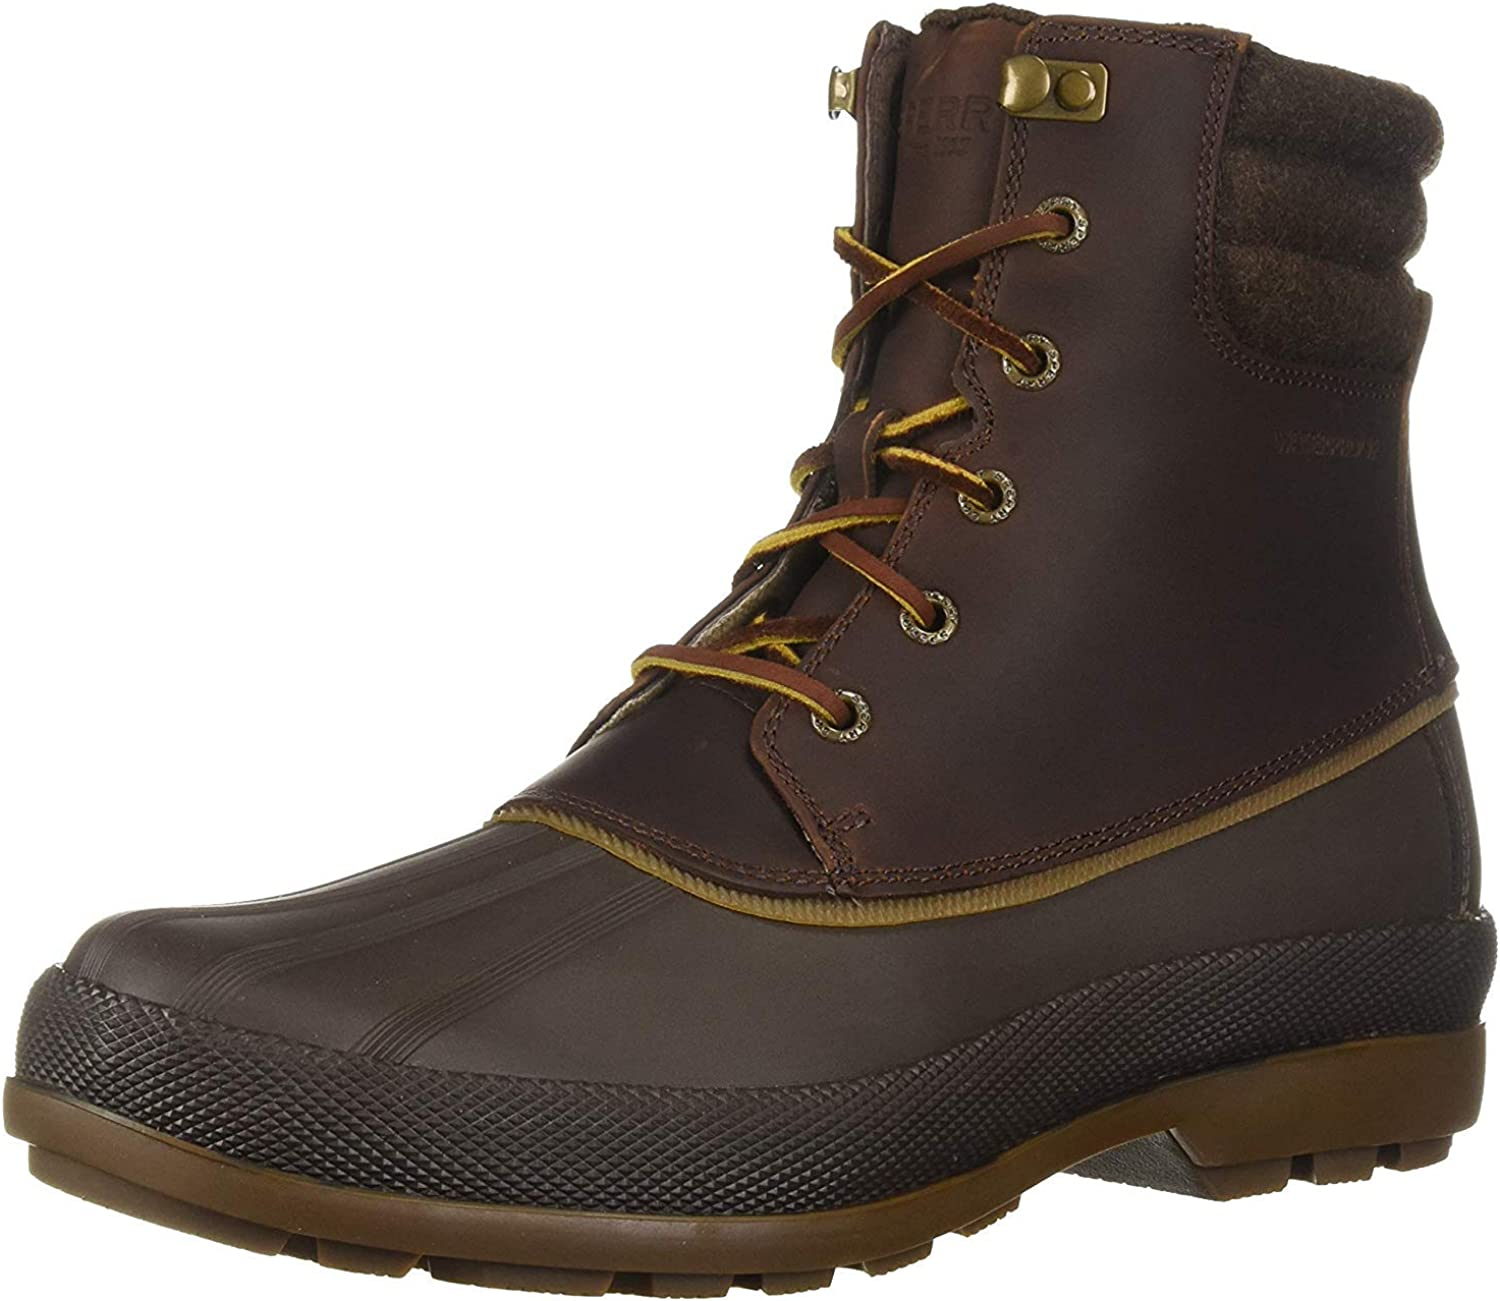 Sperry Men's Cold Bay Ice+ Snow Boot